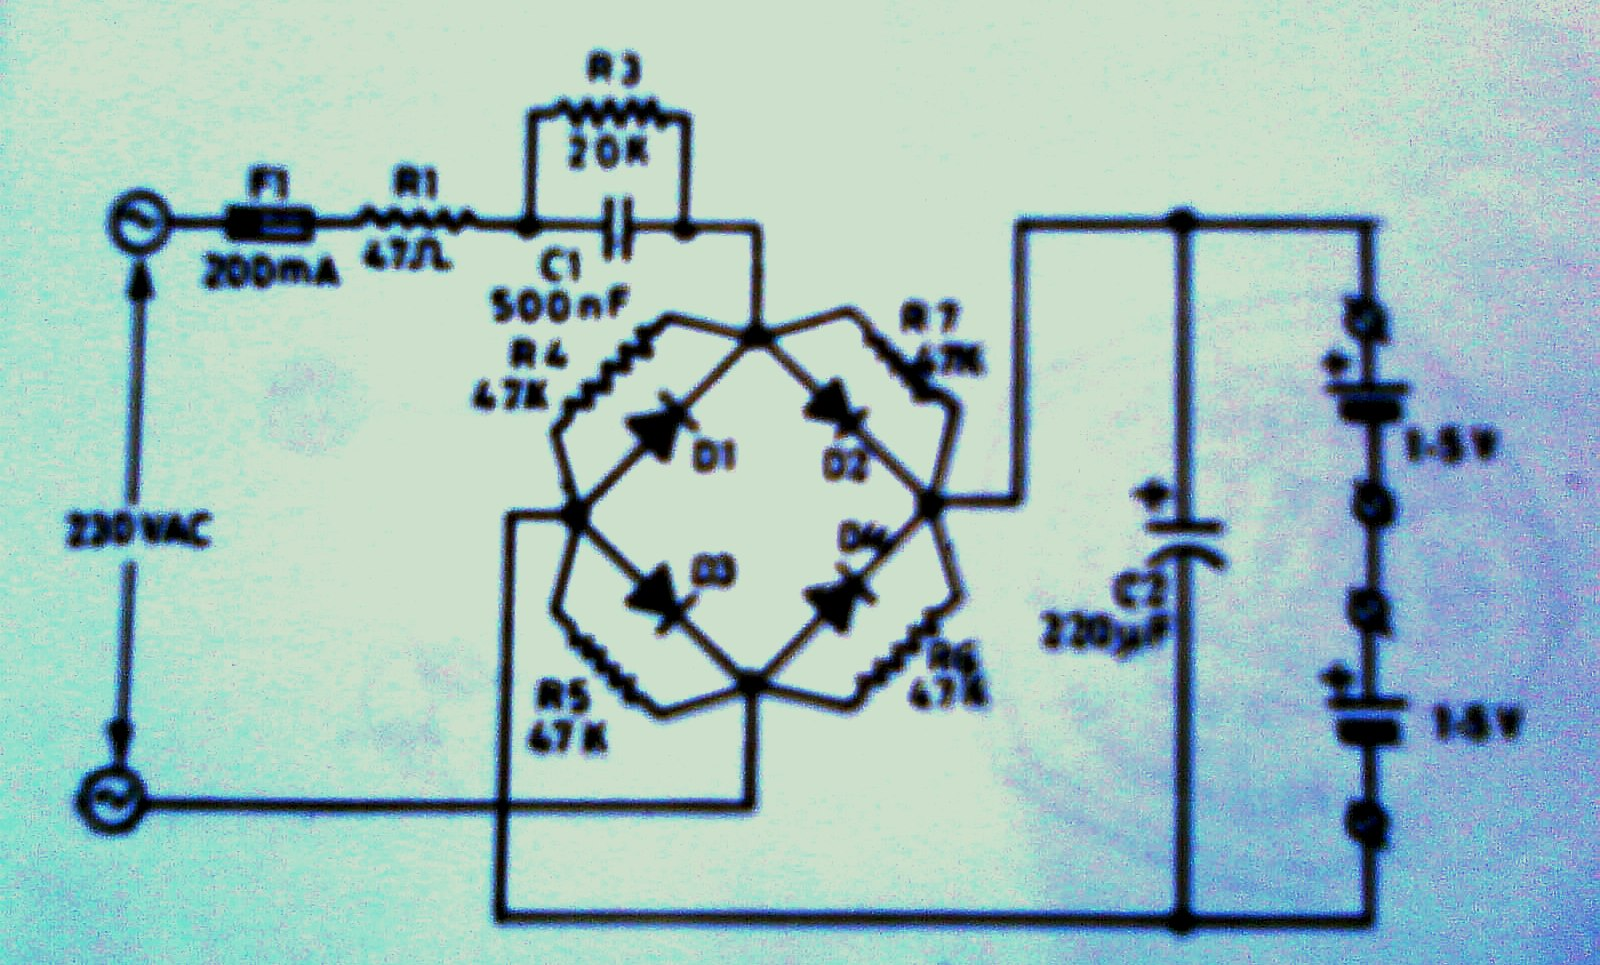 Huzoonline 2010 Figure 1 Tda2050 Typical Hifi Amplifier Schematic The Austere Ni Cad Cell Charger